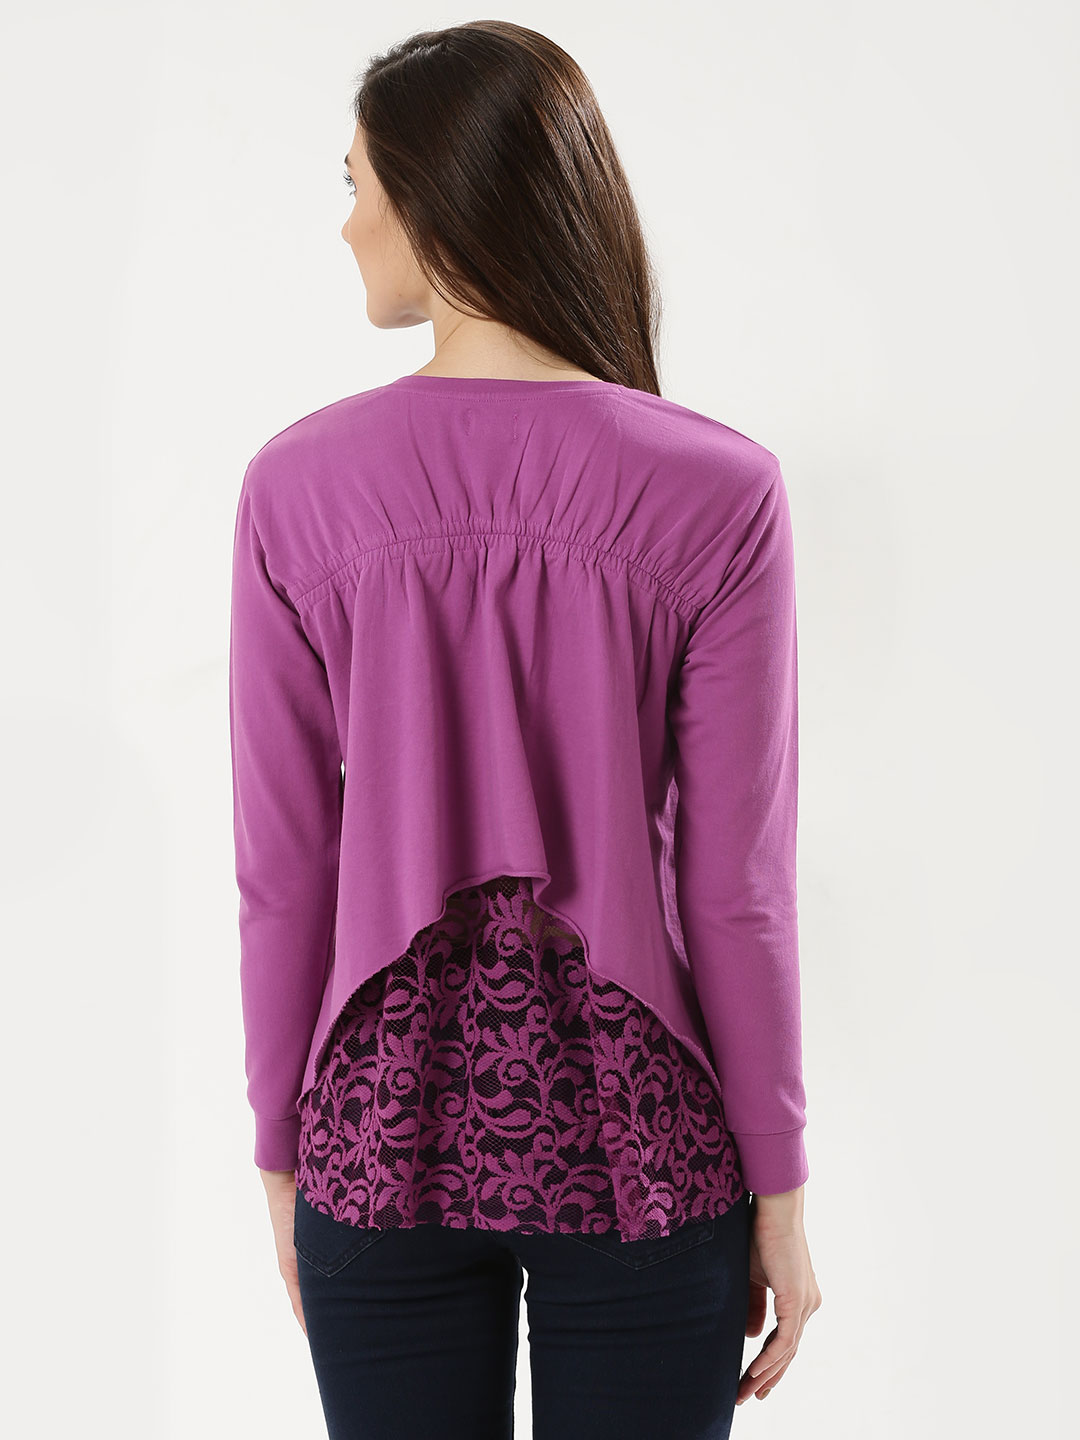 Beyond Clouds PLUM Lace Insert Ruched Back Sweatshirt 1